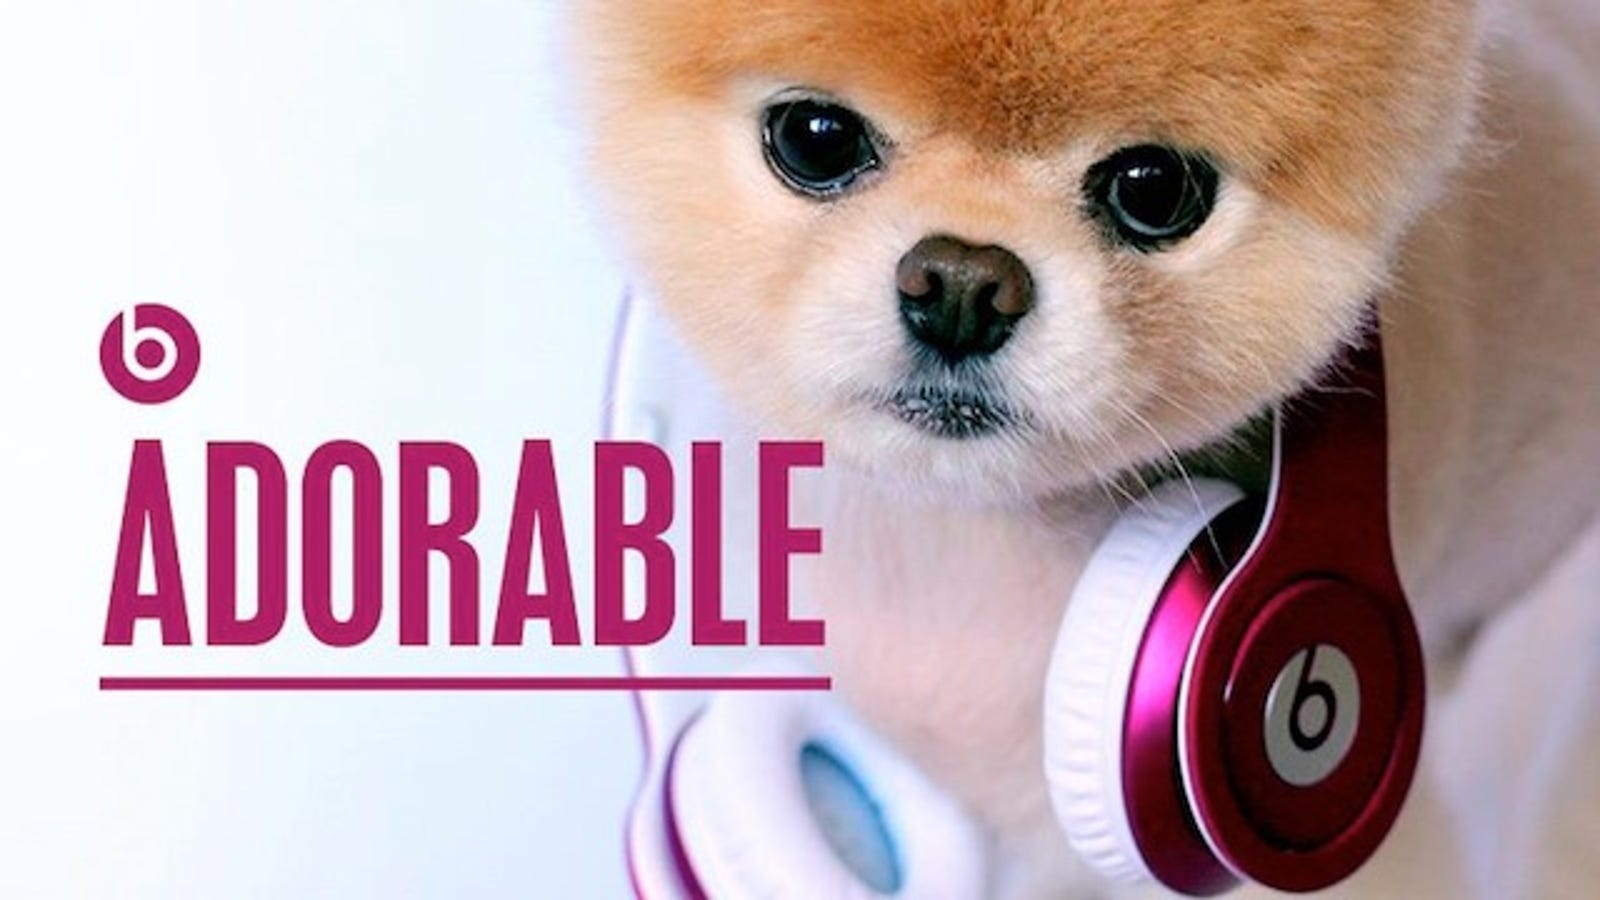 noise cancelling earbuds osha - Internet's Cutest Dog Endorses World's Dumbest Headphones